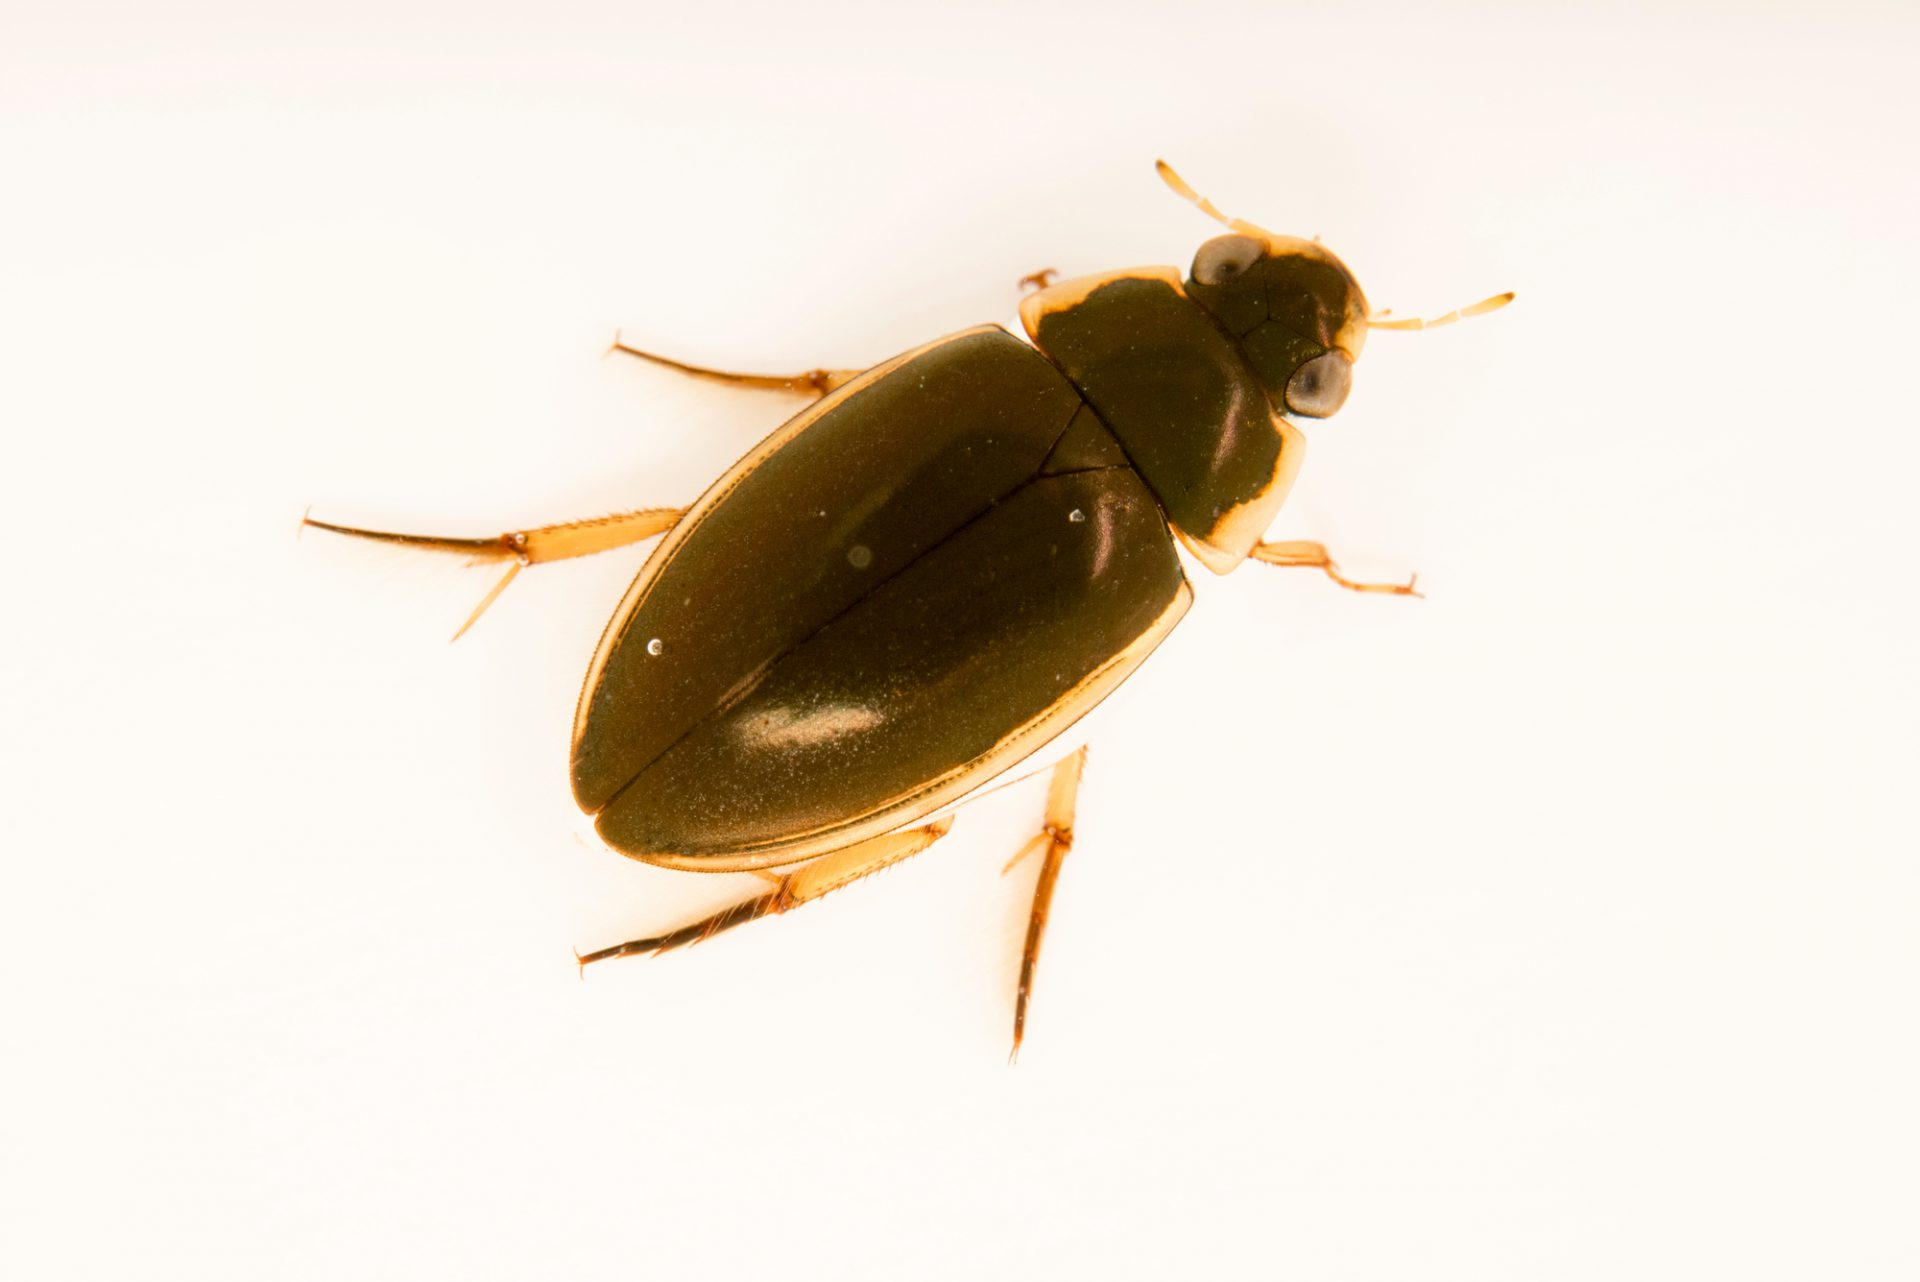 Photo: Aquatic beetle (Tropisternus lateralis) at Cedar Point Biological Station.